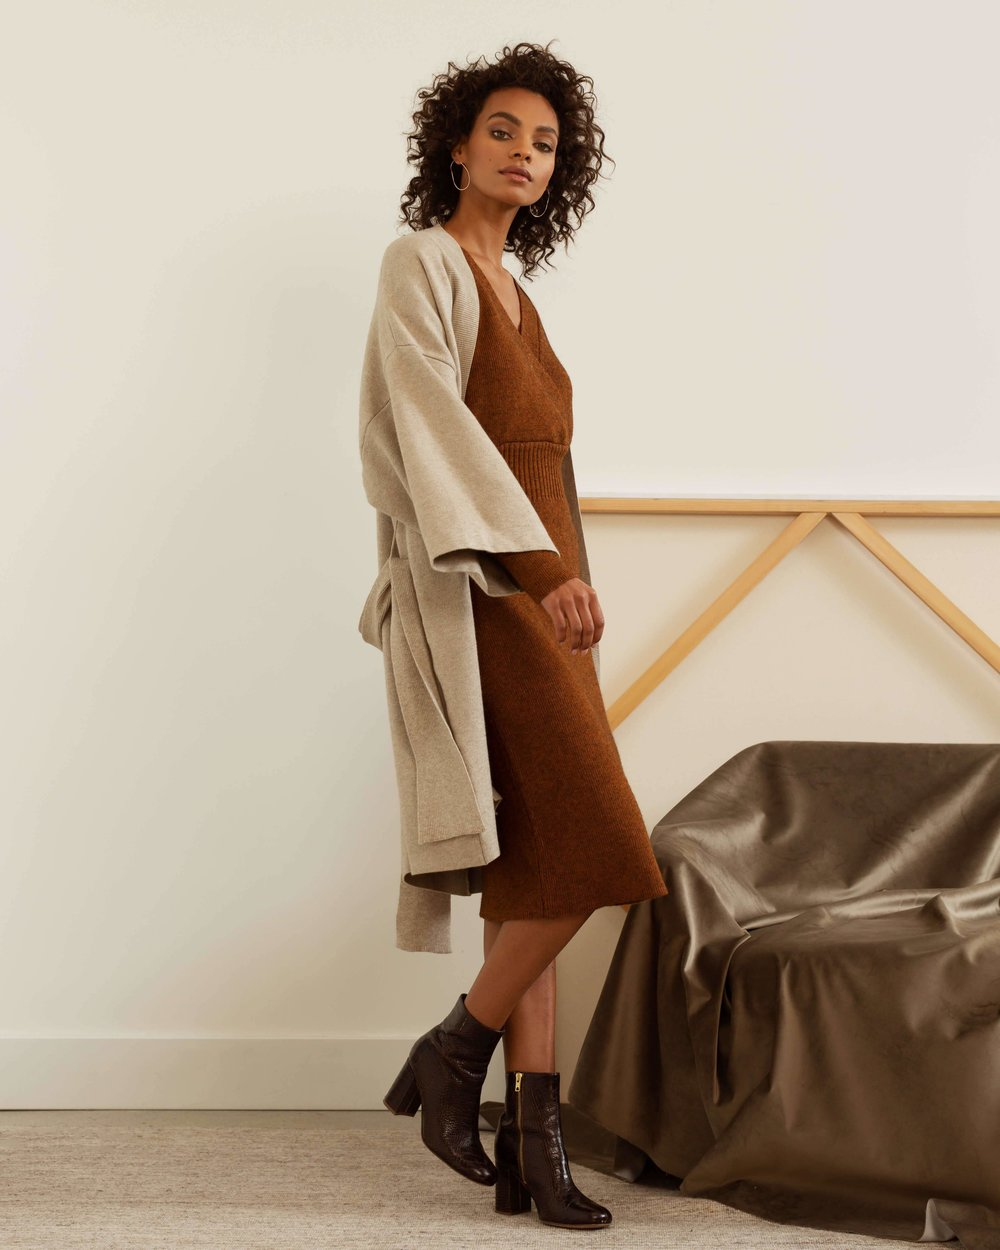 modern-citizen-nyla-oversized-tie-front-sweater-coat-sweaters-3_438c5aa6-8376-4e10-a301-ad45dfd009be.jpg